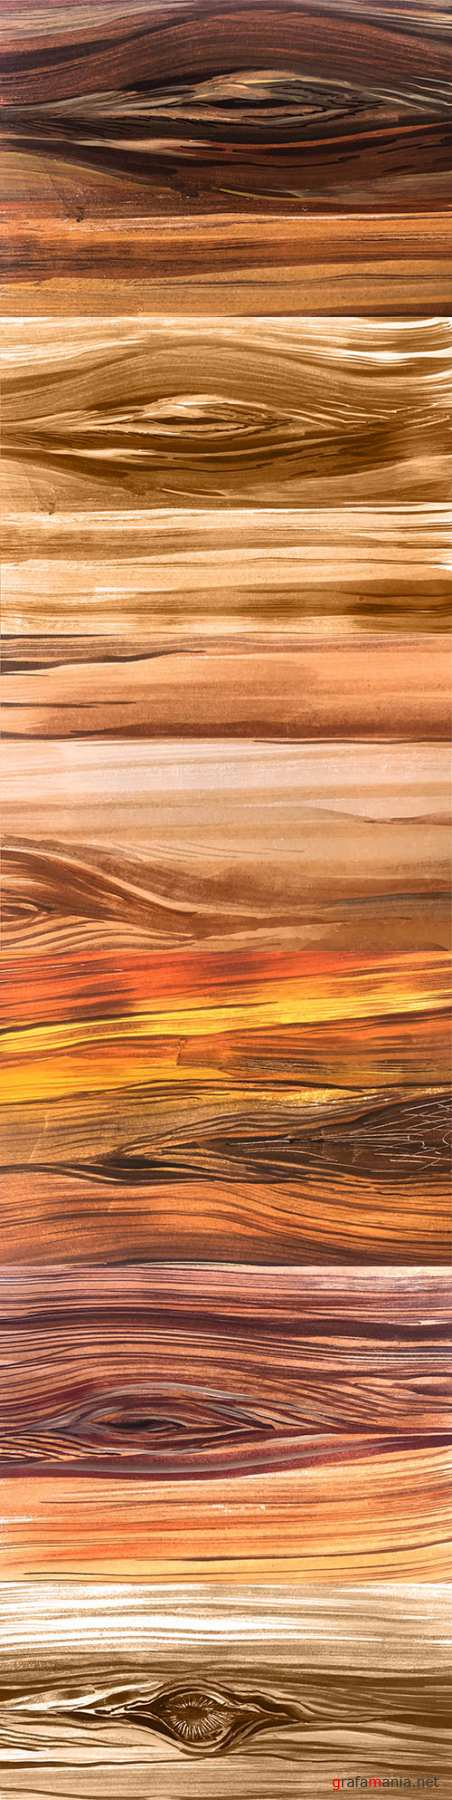 Abstract brown wooden design watercolor texture